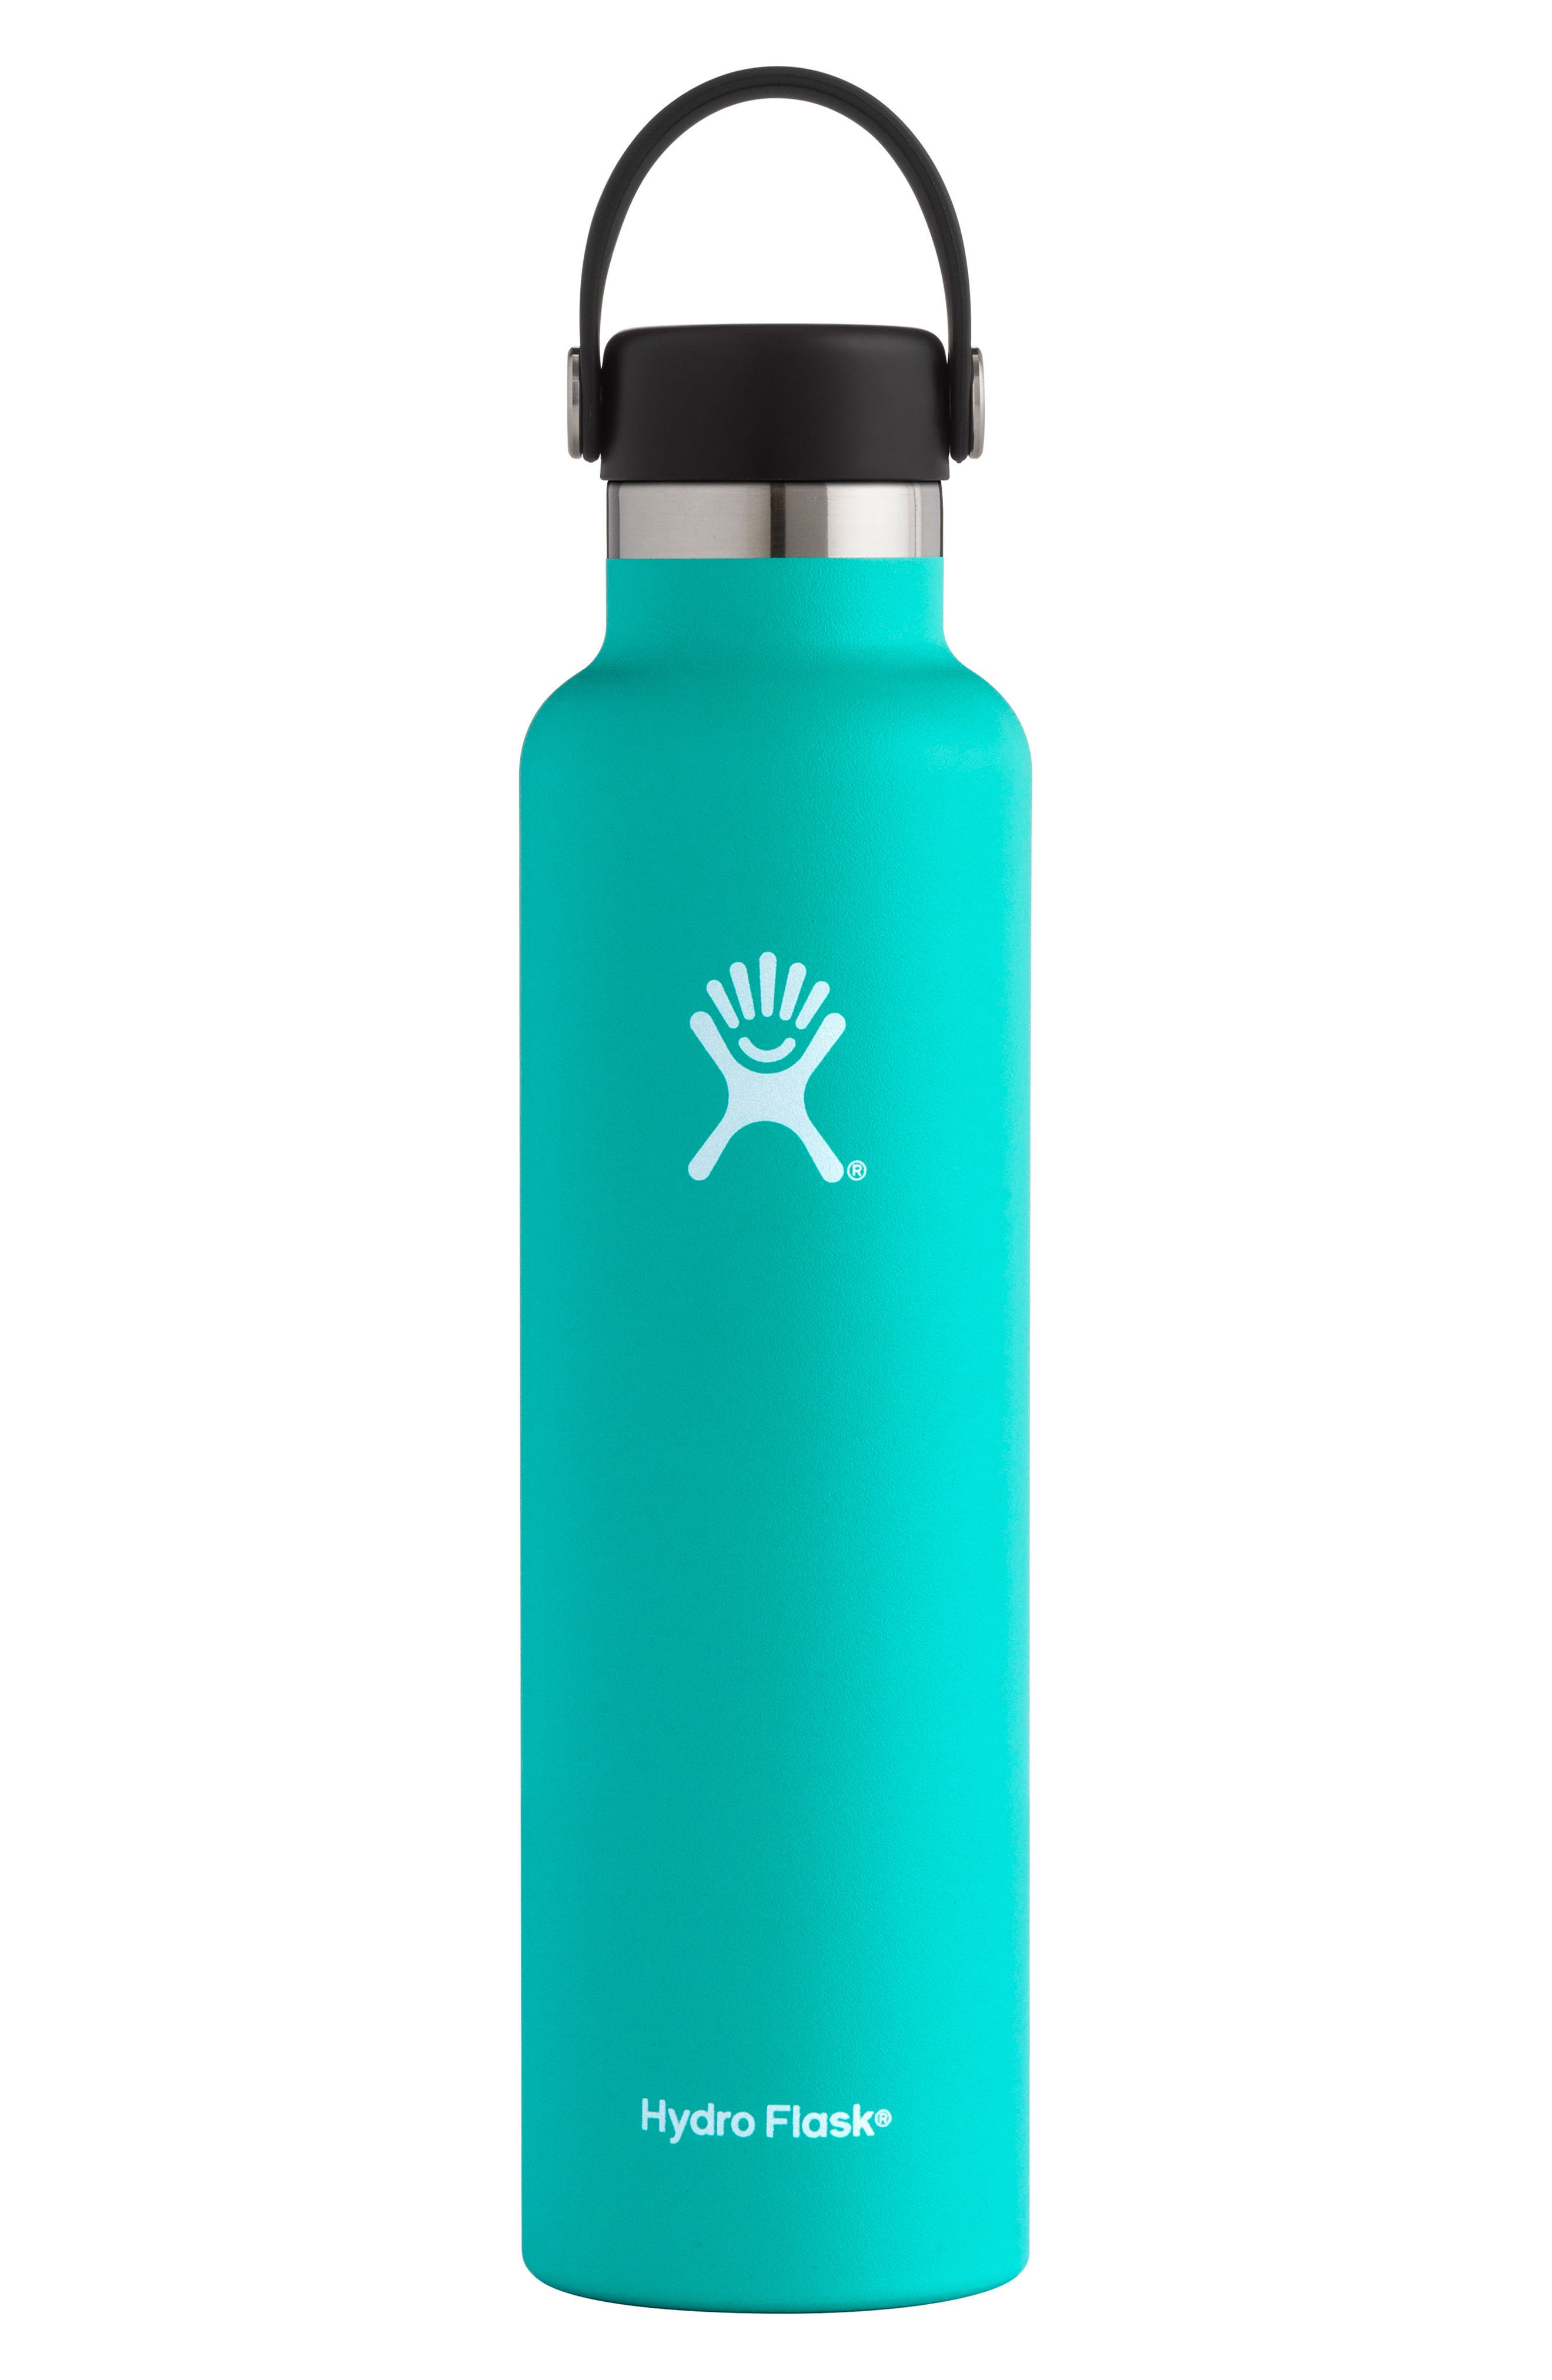 Hydro Flask 24-Ounce Standard Mouth Bottle